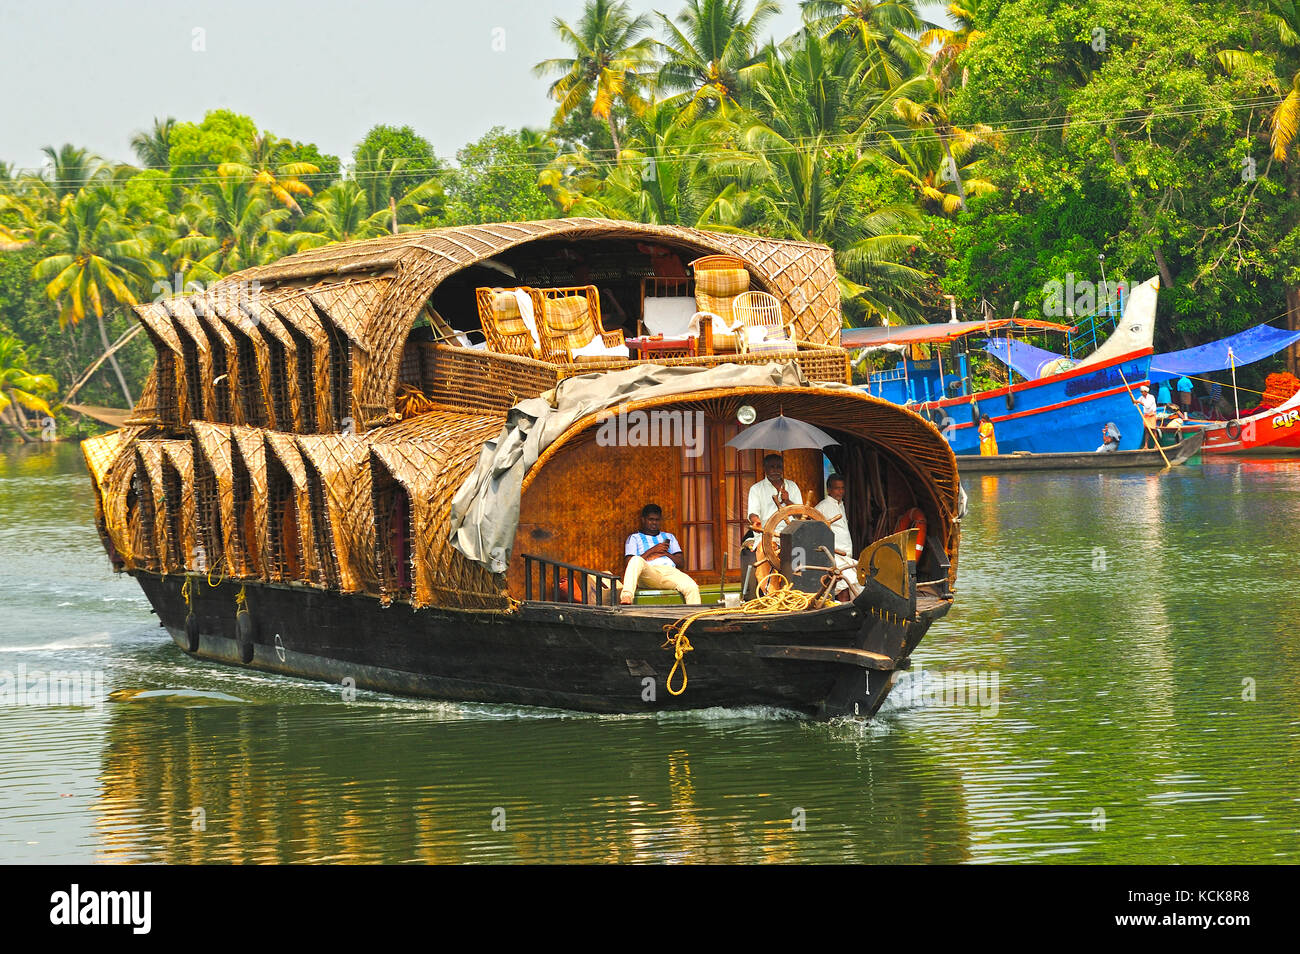 house boat in backwaters between Kollam and Cochin, Kerala, India - Stock Image